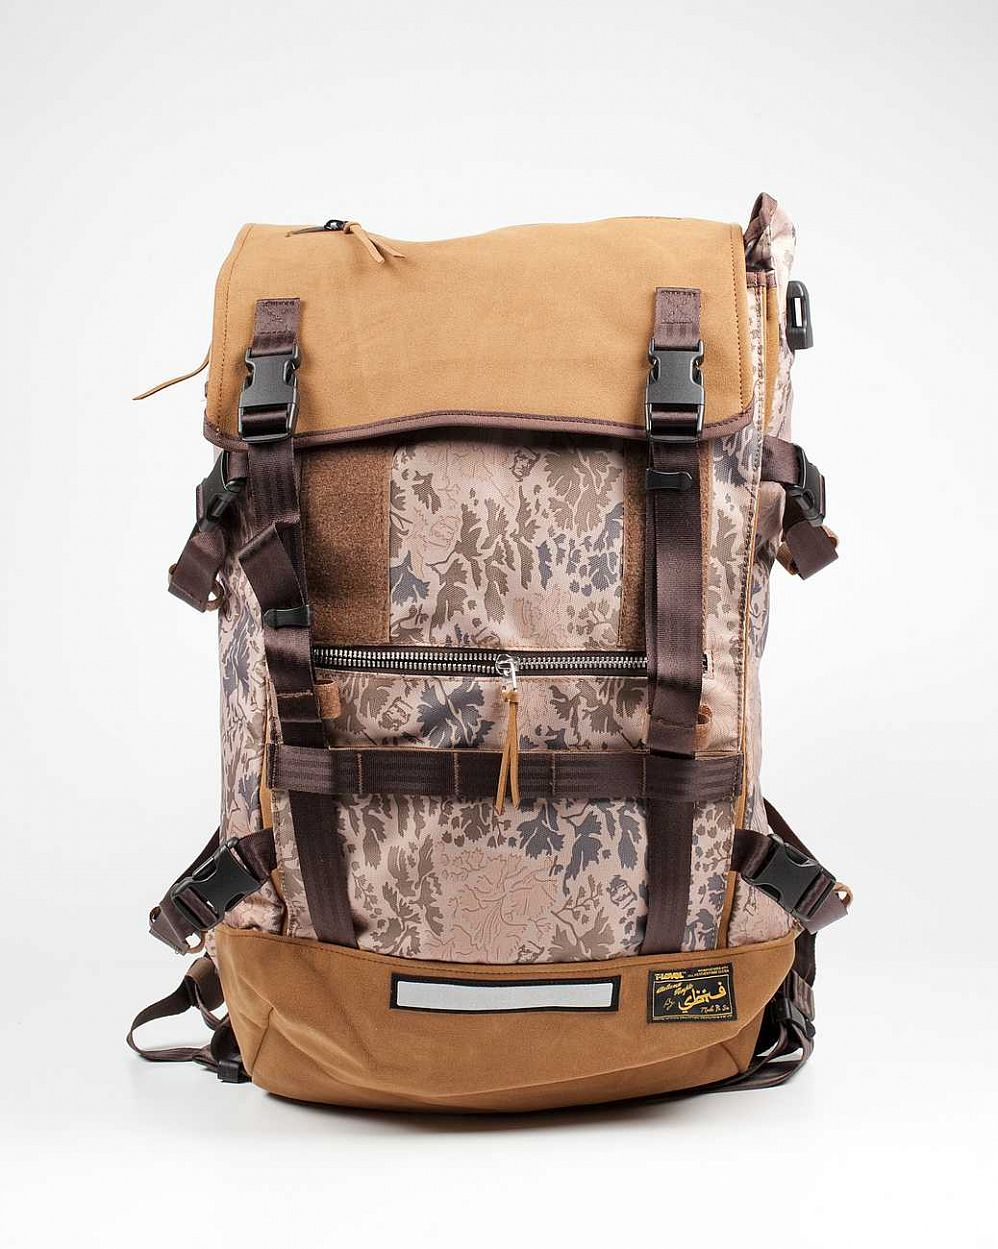 купить Рюкзак T Level Backpack Company Challenger 32L Backpack Sabotage Camo в Москве